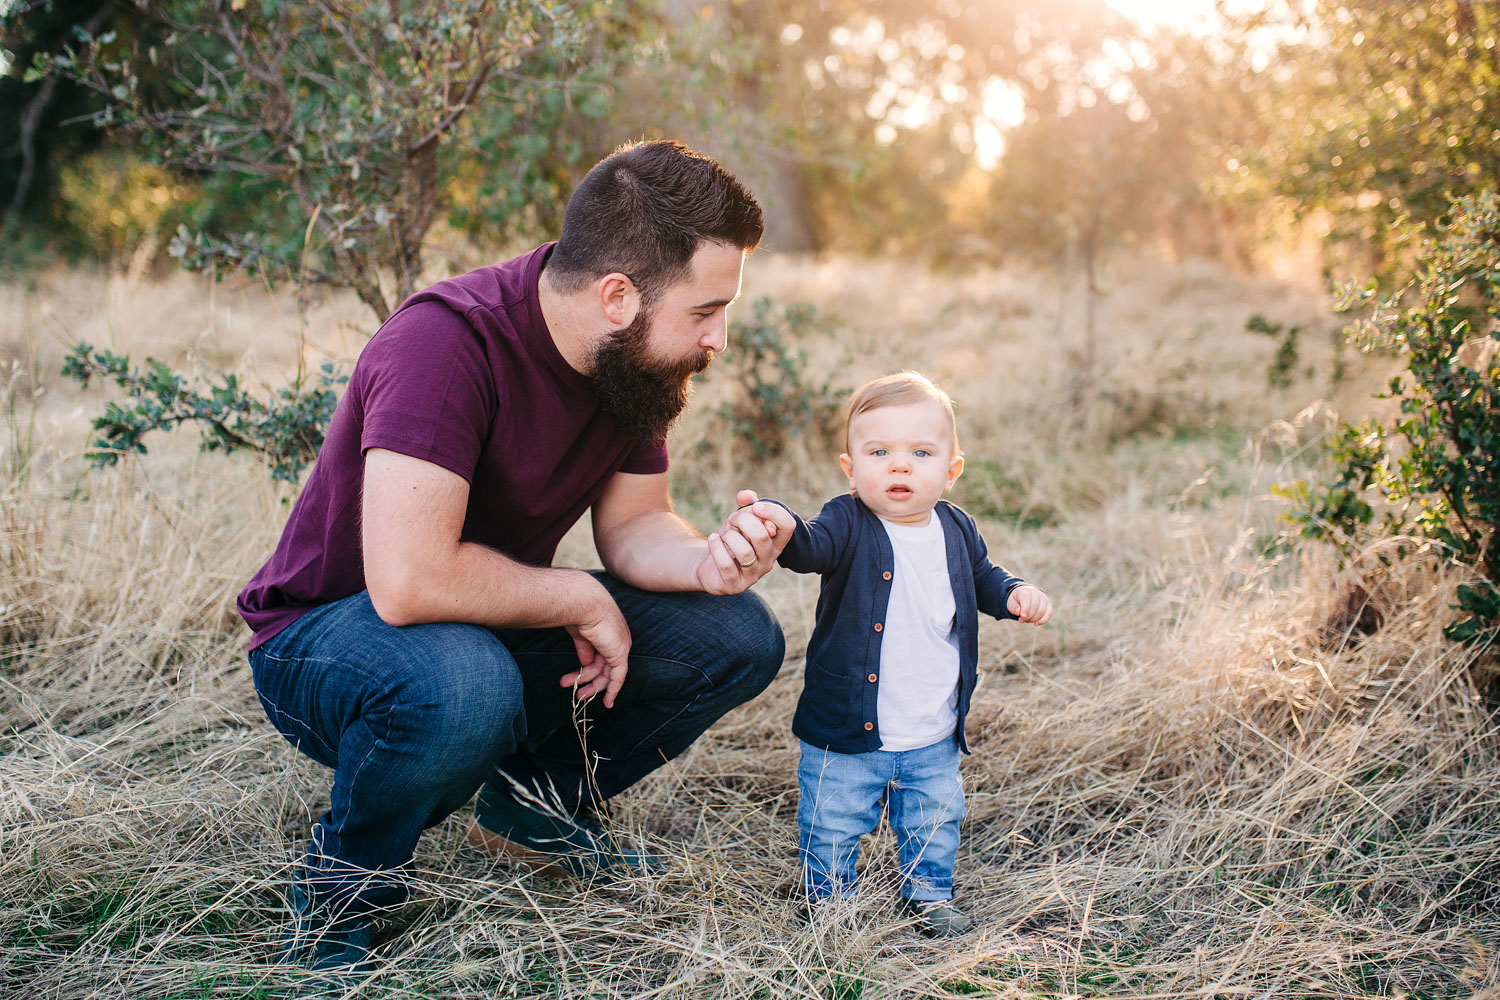 A baby boy stands with the help of his dad during a family mini session with their photography, Amy Wright, based out of Roseville, California.